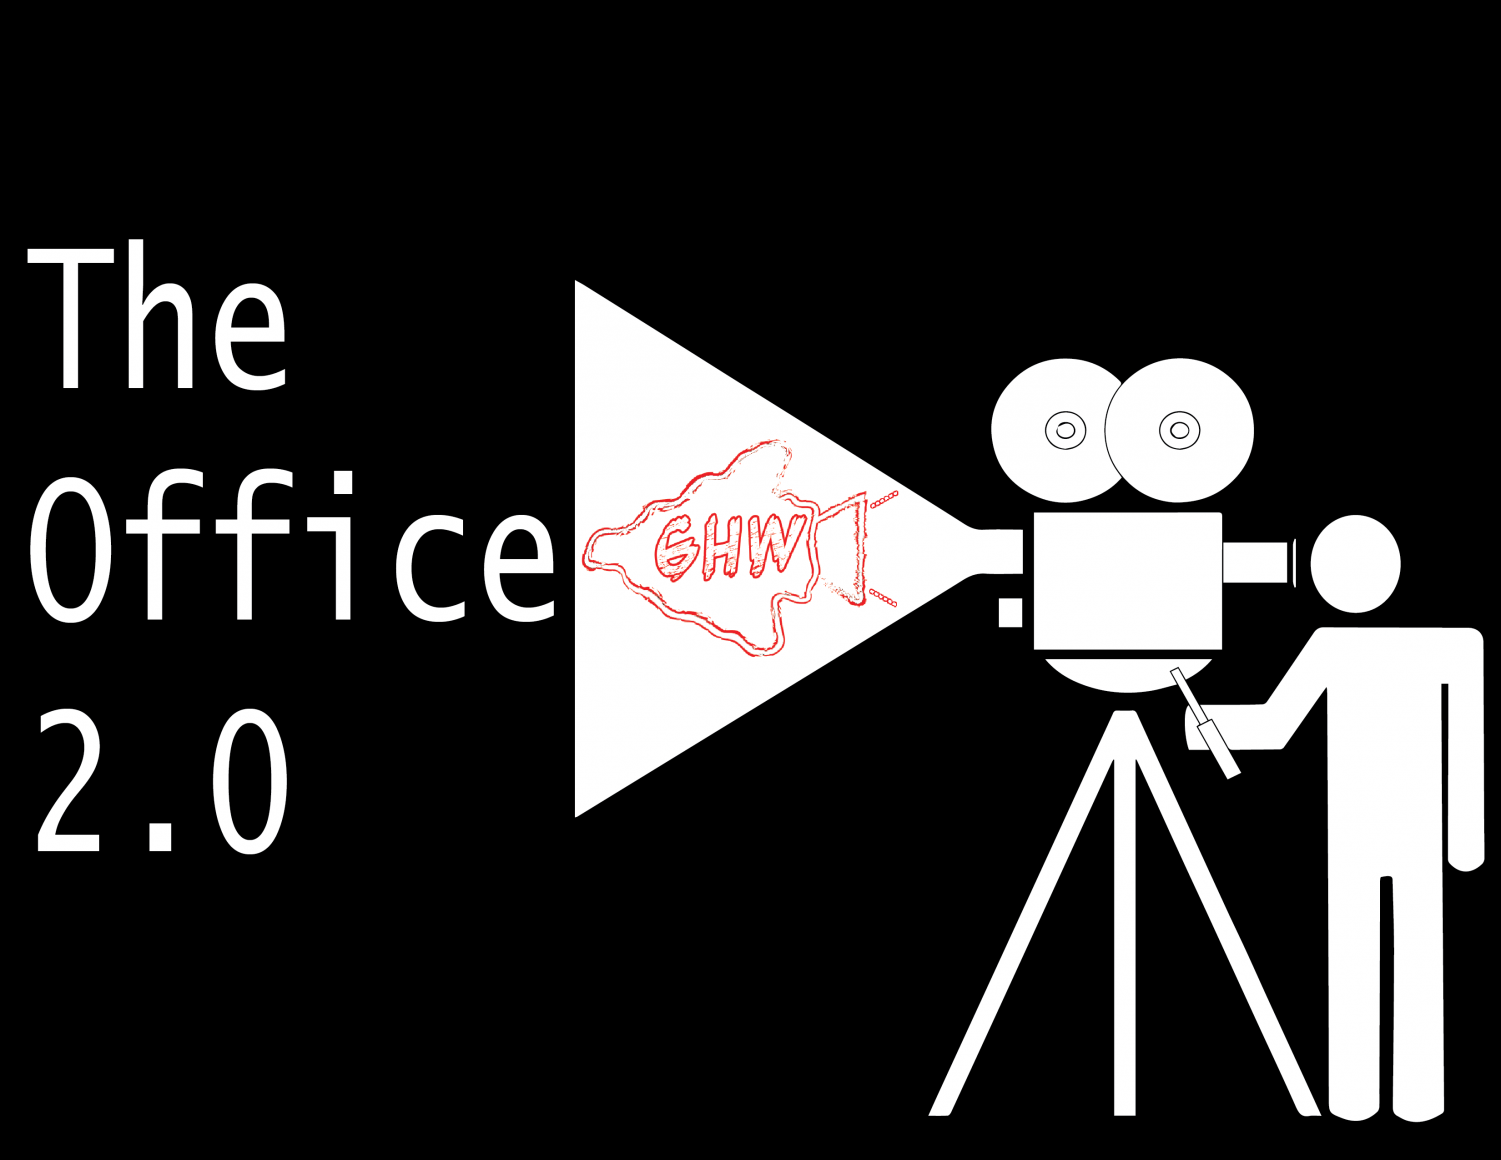 The Office 2.0